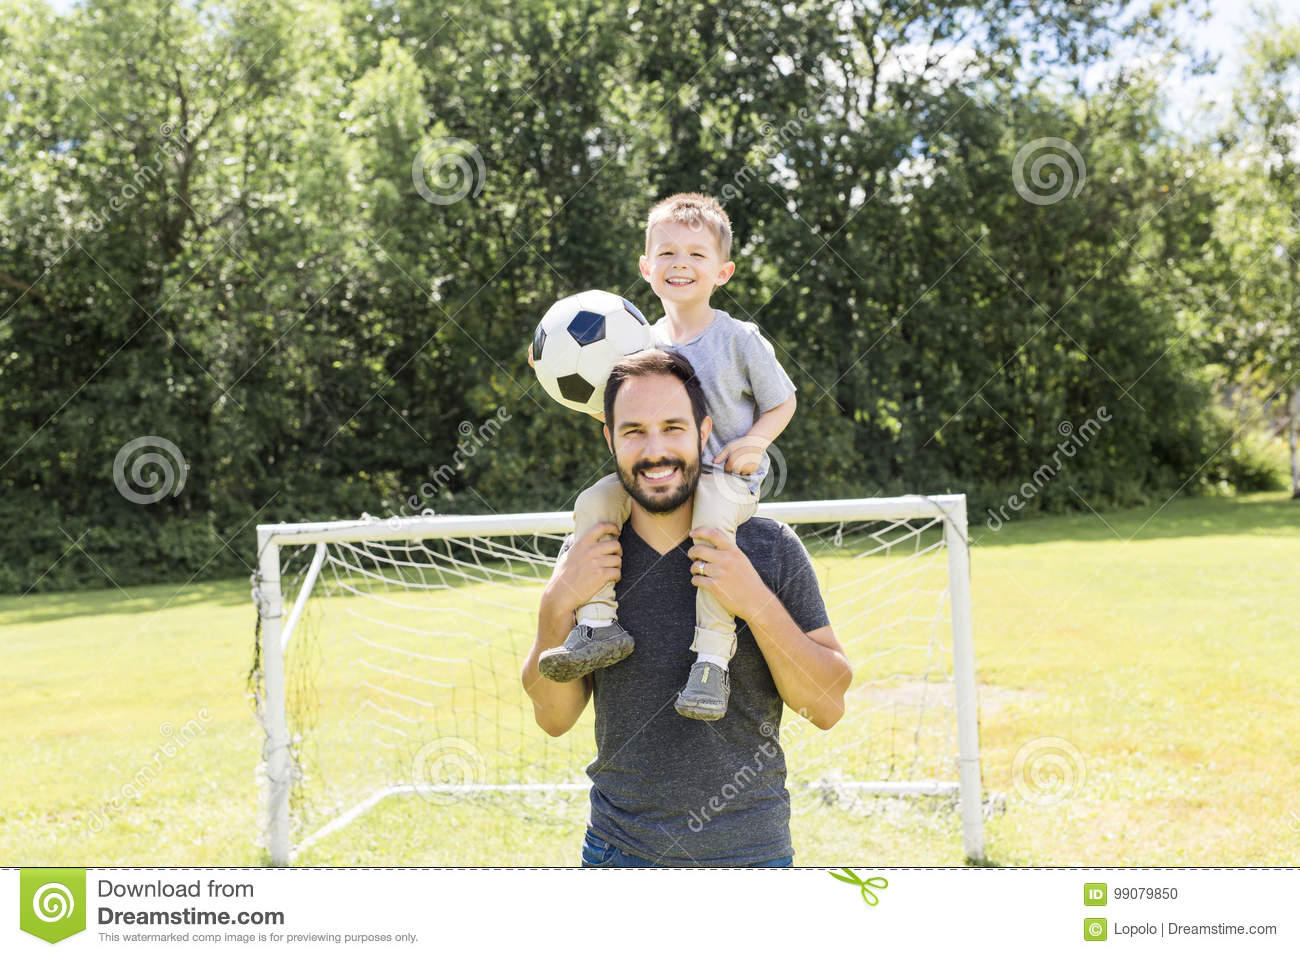 Download Young Father With His Little Son Playing Football On Football Pitch Stock Photo - Image of smile, play: 99079850